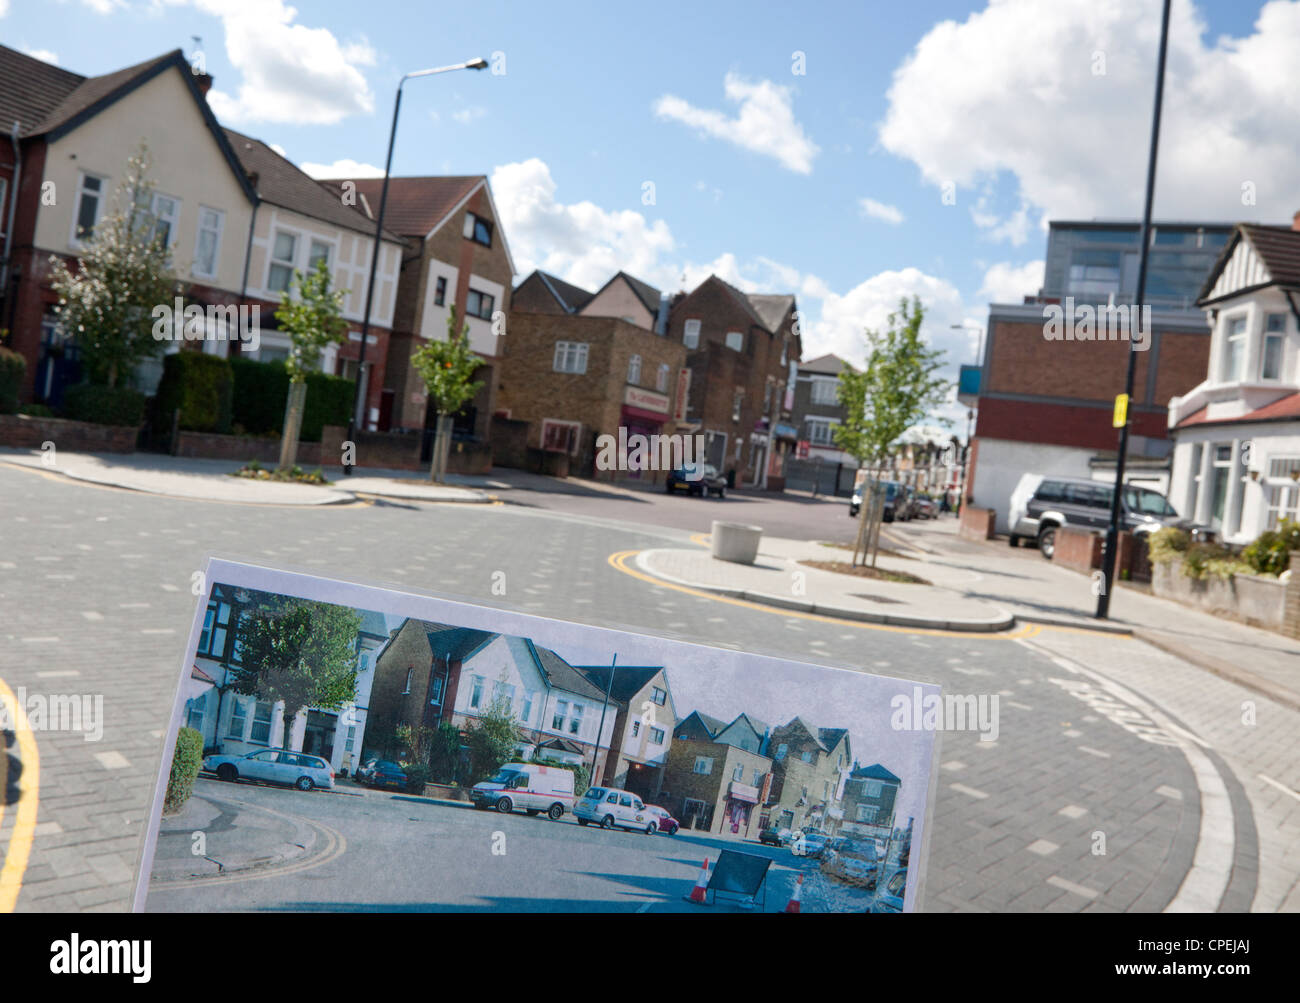 New traffic calming scheme by Sustrans and Haringey Council in Turnpike Lane area of North London - inset shows - Stock Image